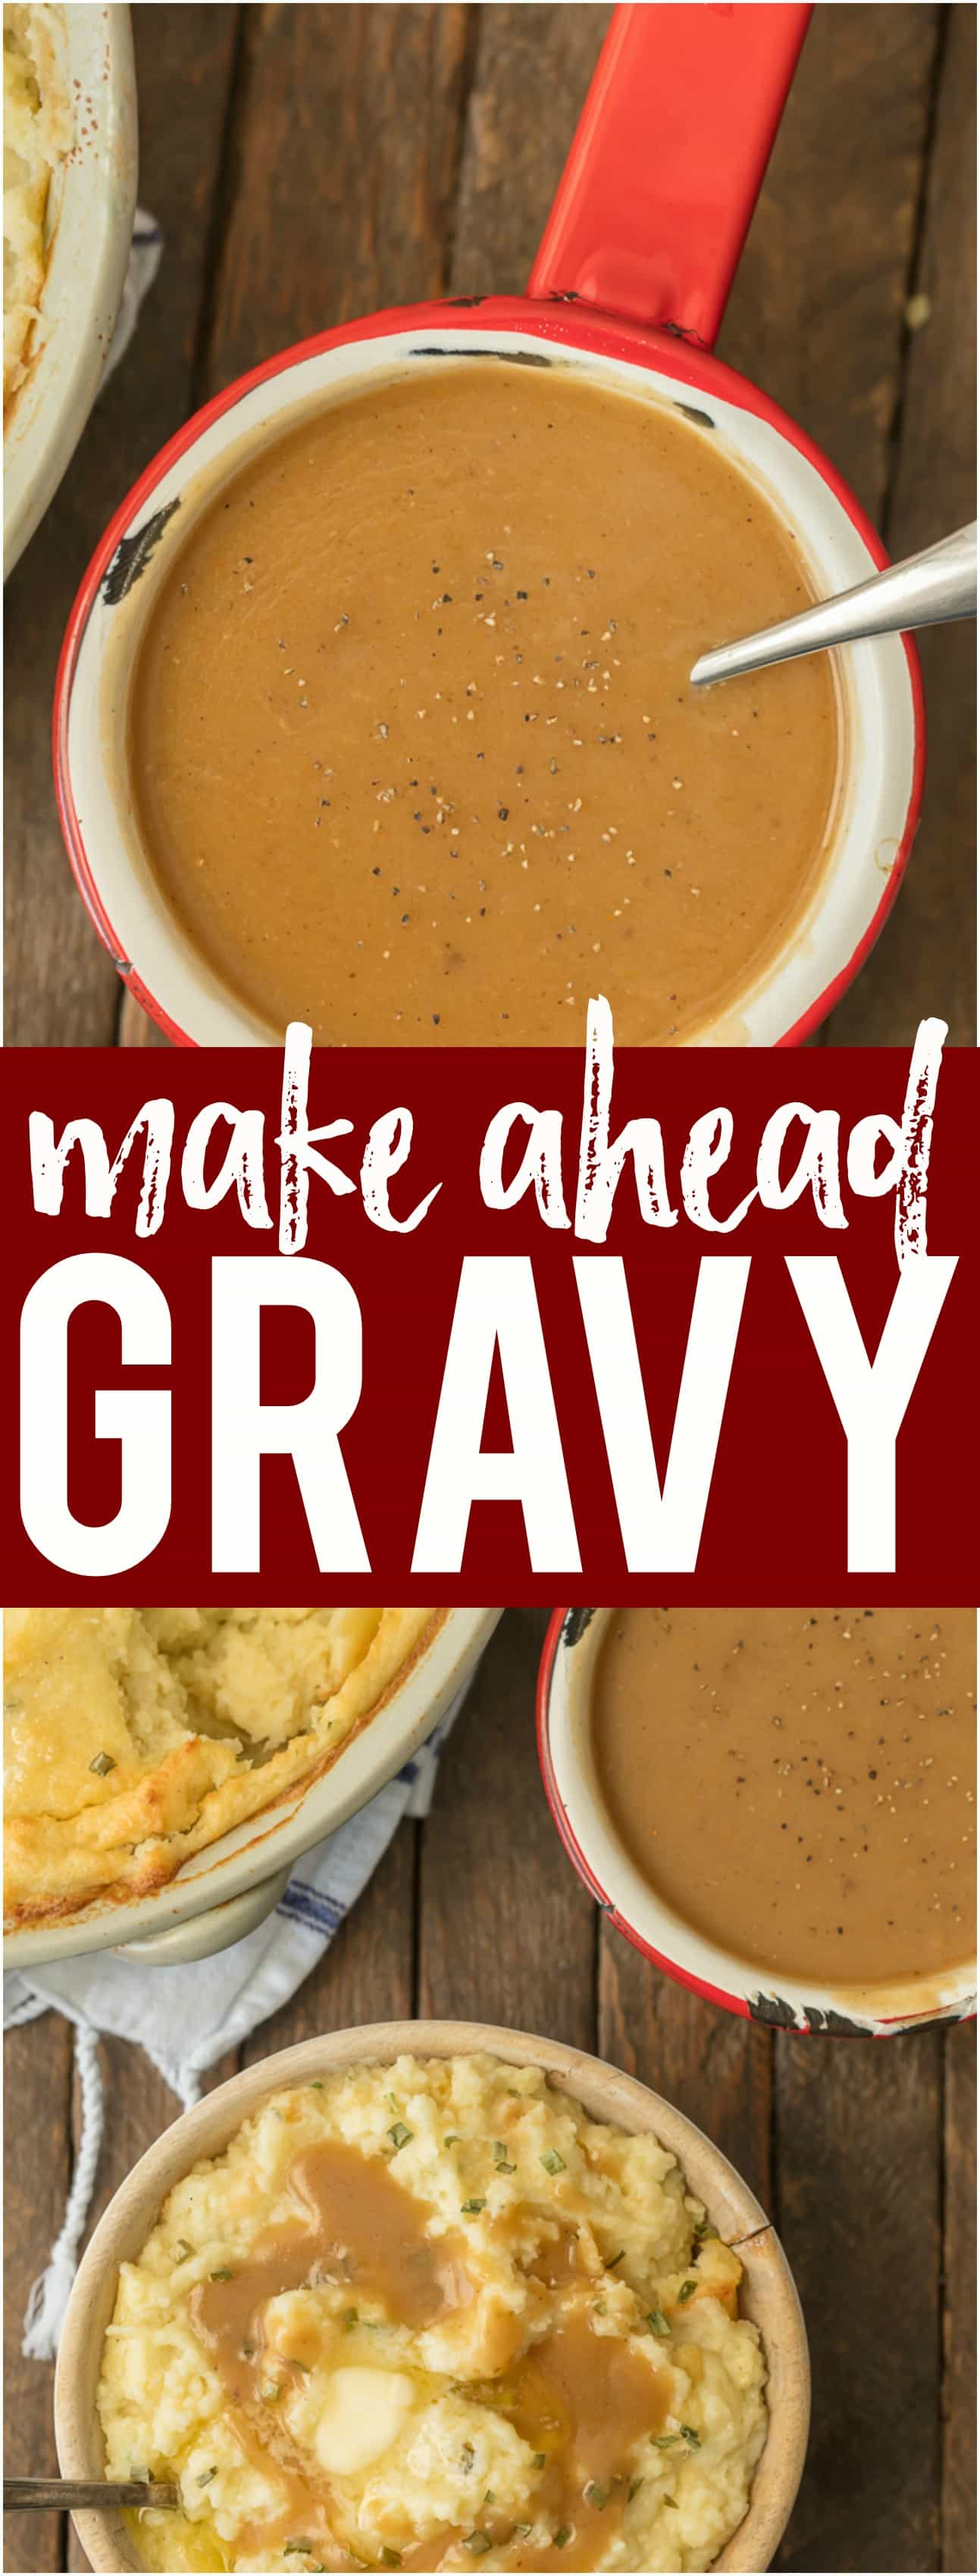 This MAKE AHEAD GRAVY is an absolute must for an easy and stress free Thanksgiving! It's just as delicious with none of the fuss. Gravy at its best to pair with turkey, mashed potatoes, and more!